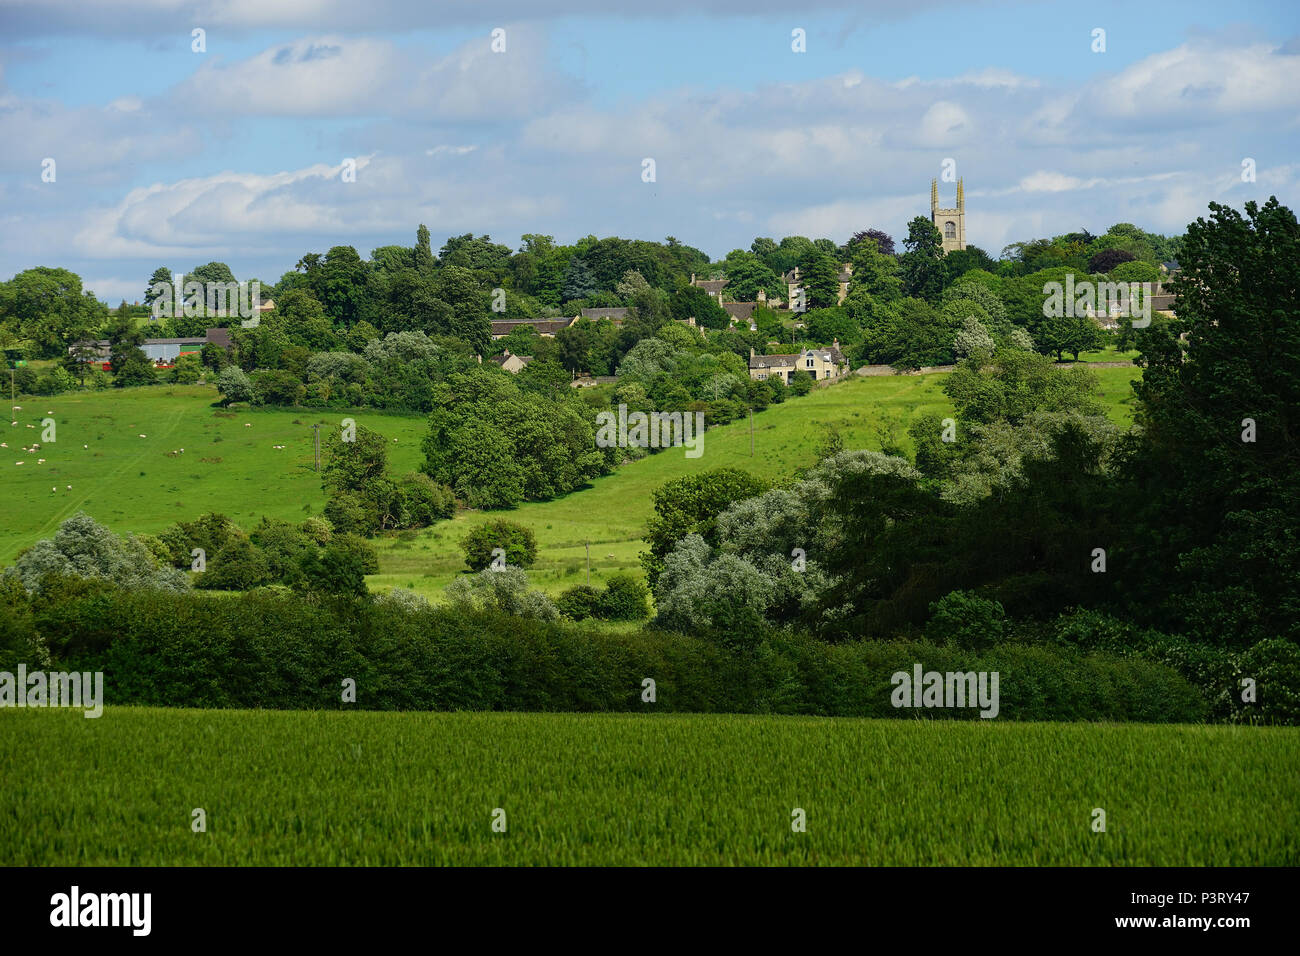 Collyweston village viewed from the Jurassic Way as it passes through the Welland Valley - Stock Image